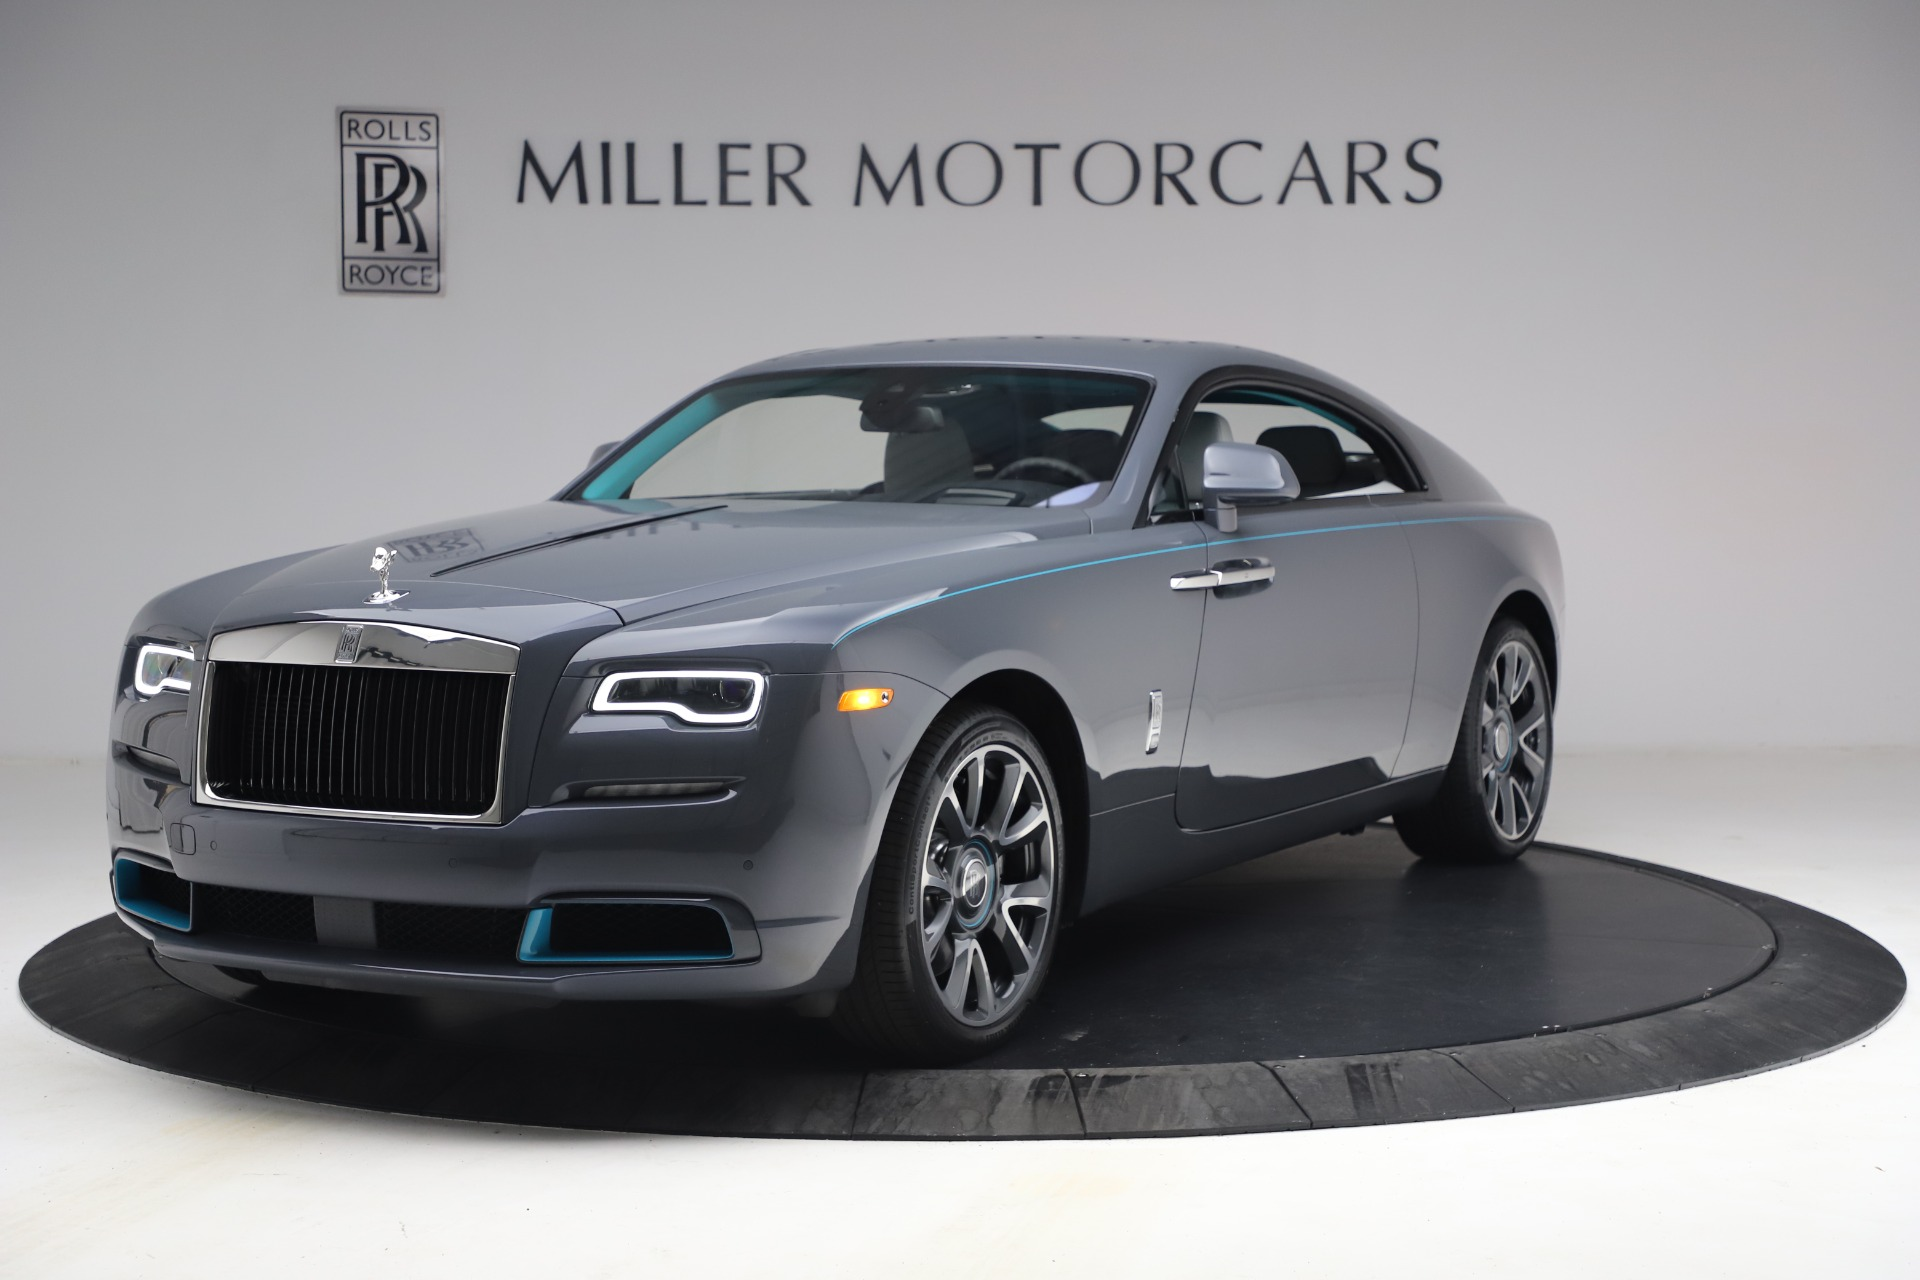 Used 2021 Rolls-Royce Wraith for sale $444,275 at Alfa Romeo of Greenwich in Greenwich CT 06830 1